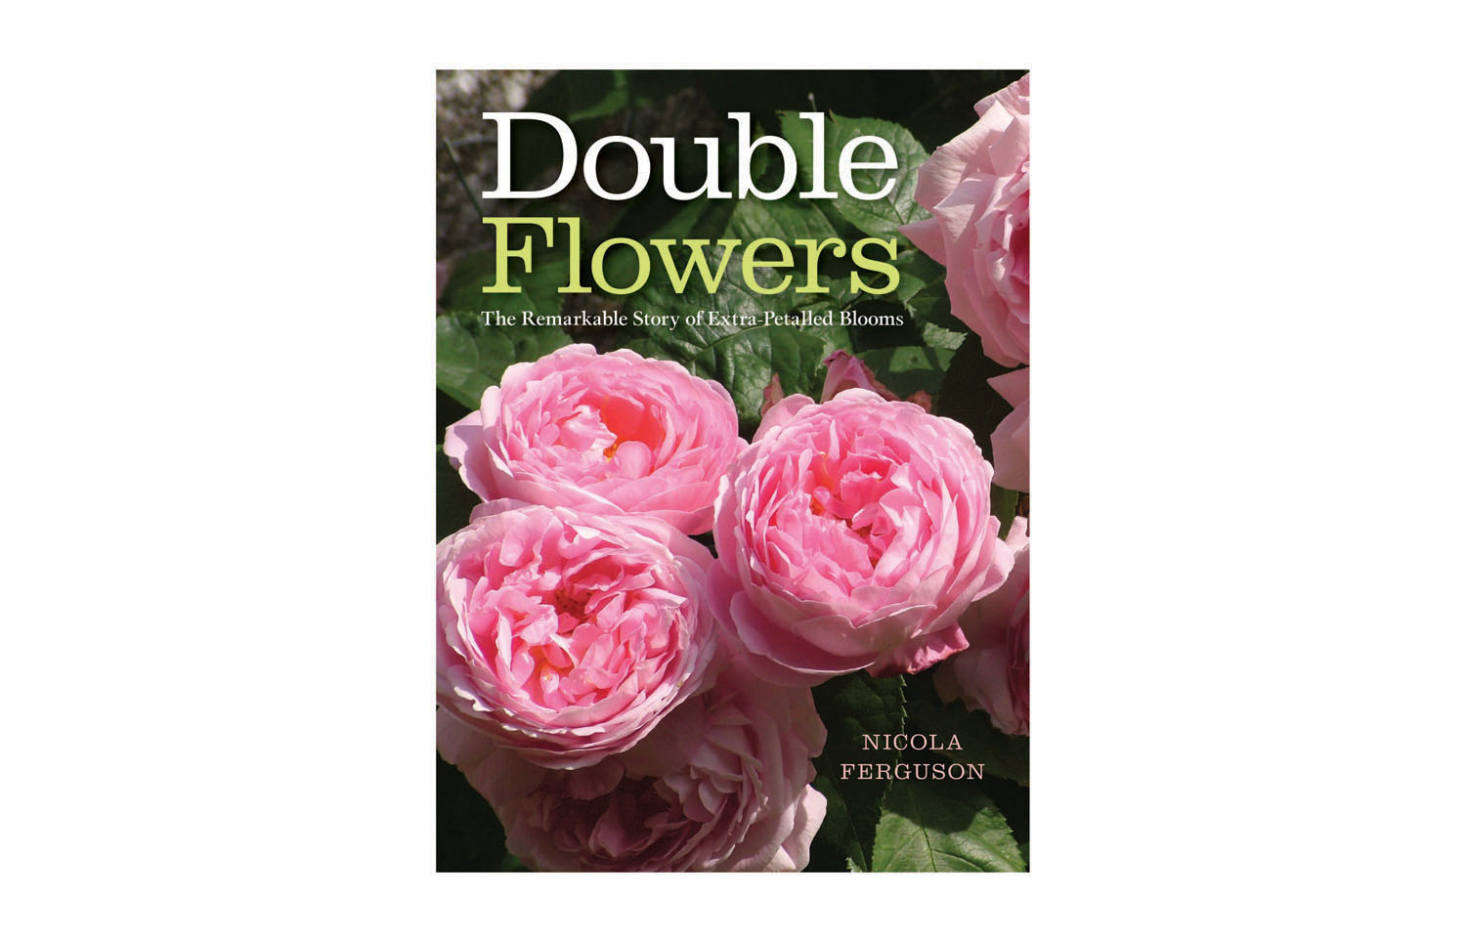 Double Flowers book cover